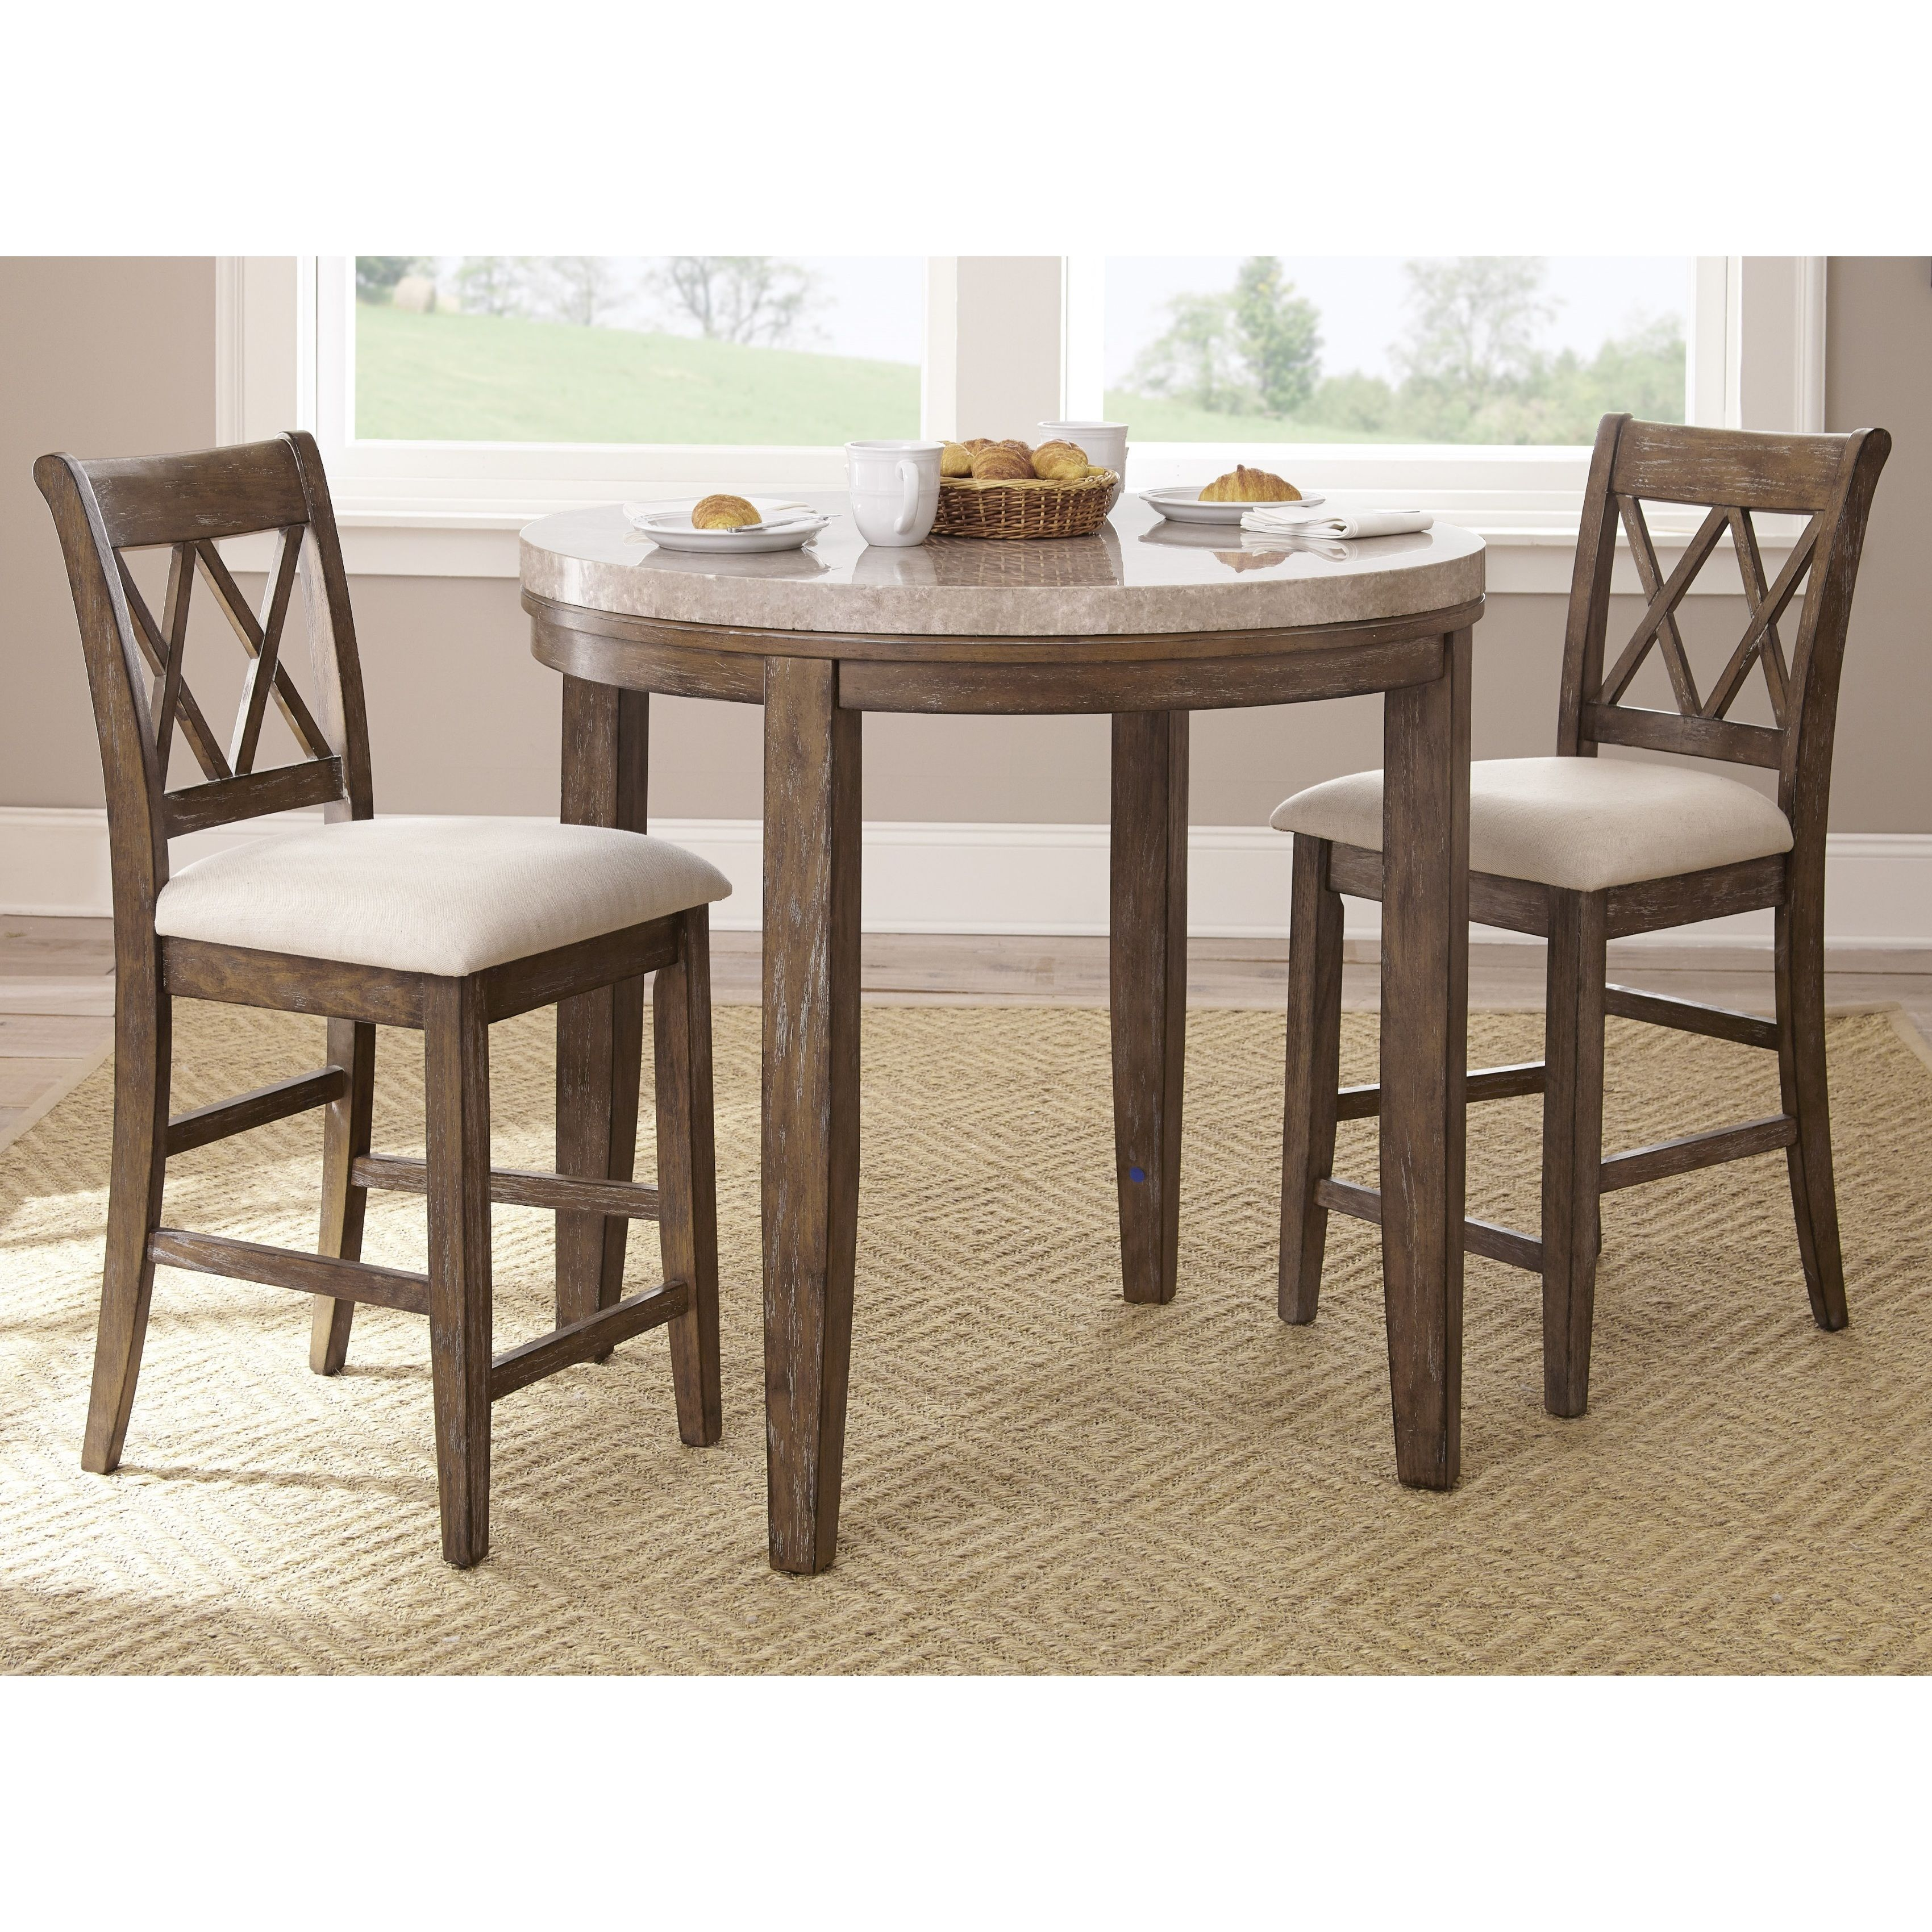 Pub Style Dinette Sets: Greyson Living Fulham Counter Height Bar Set (Fulham 3PC